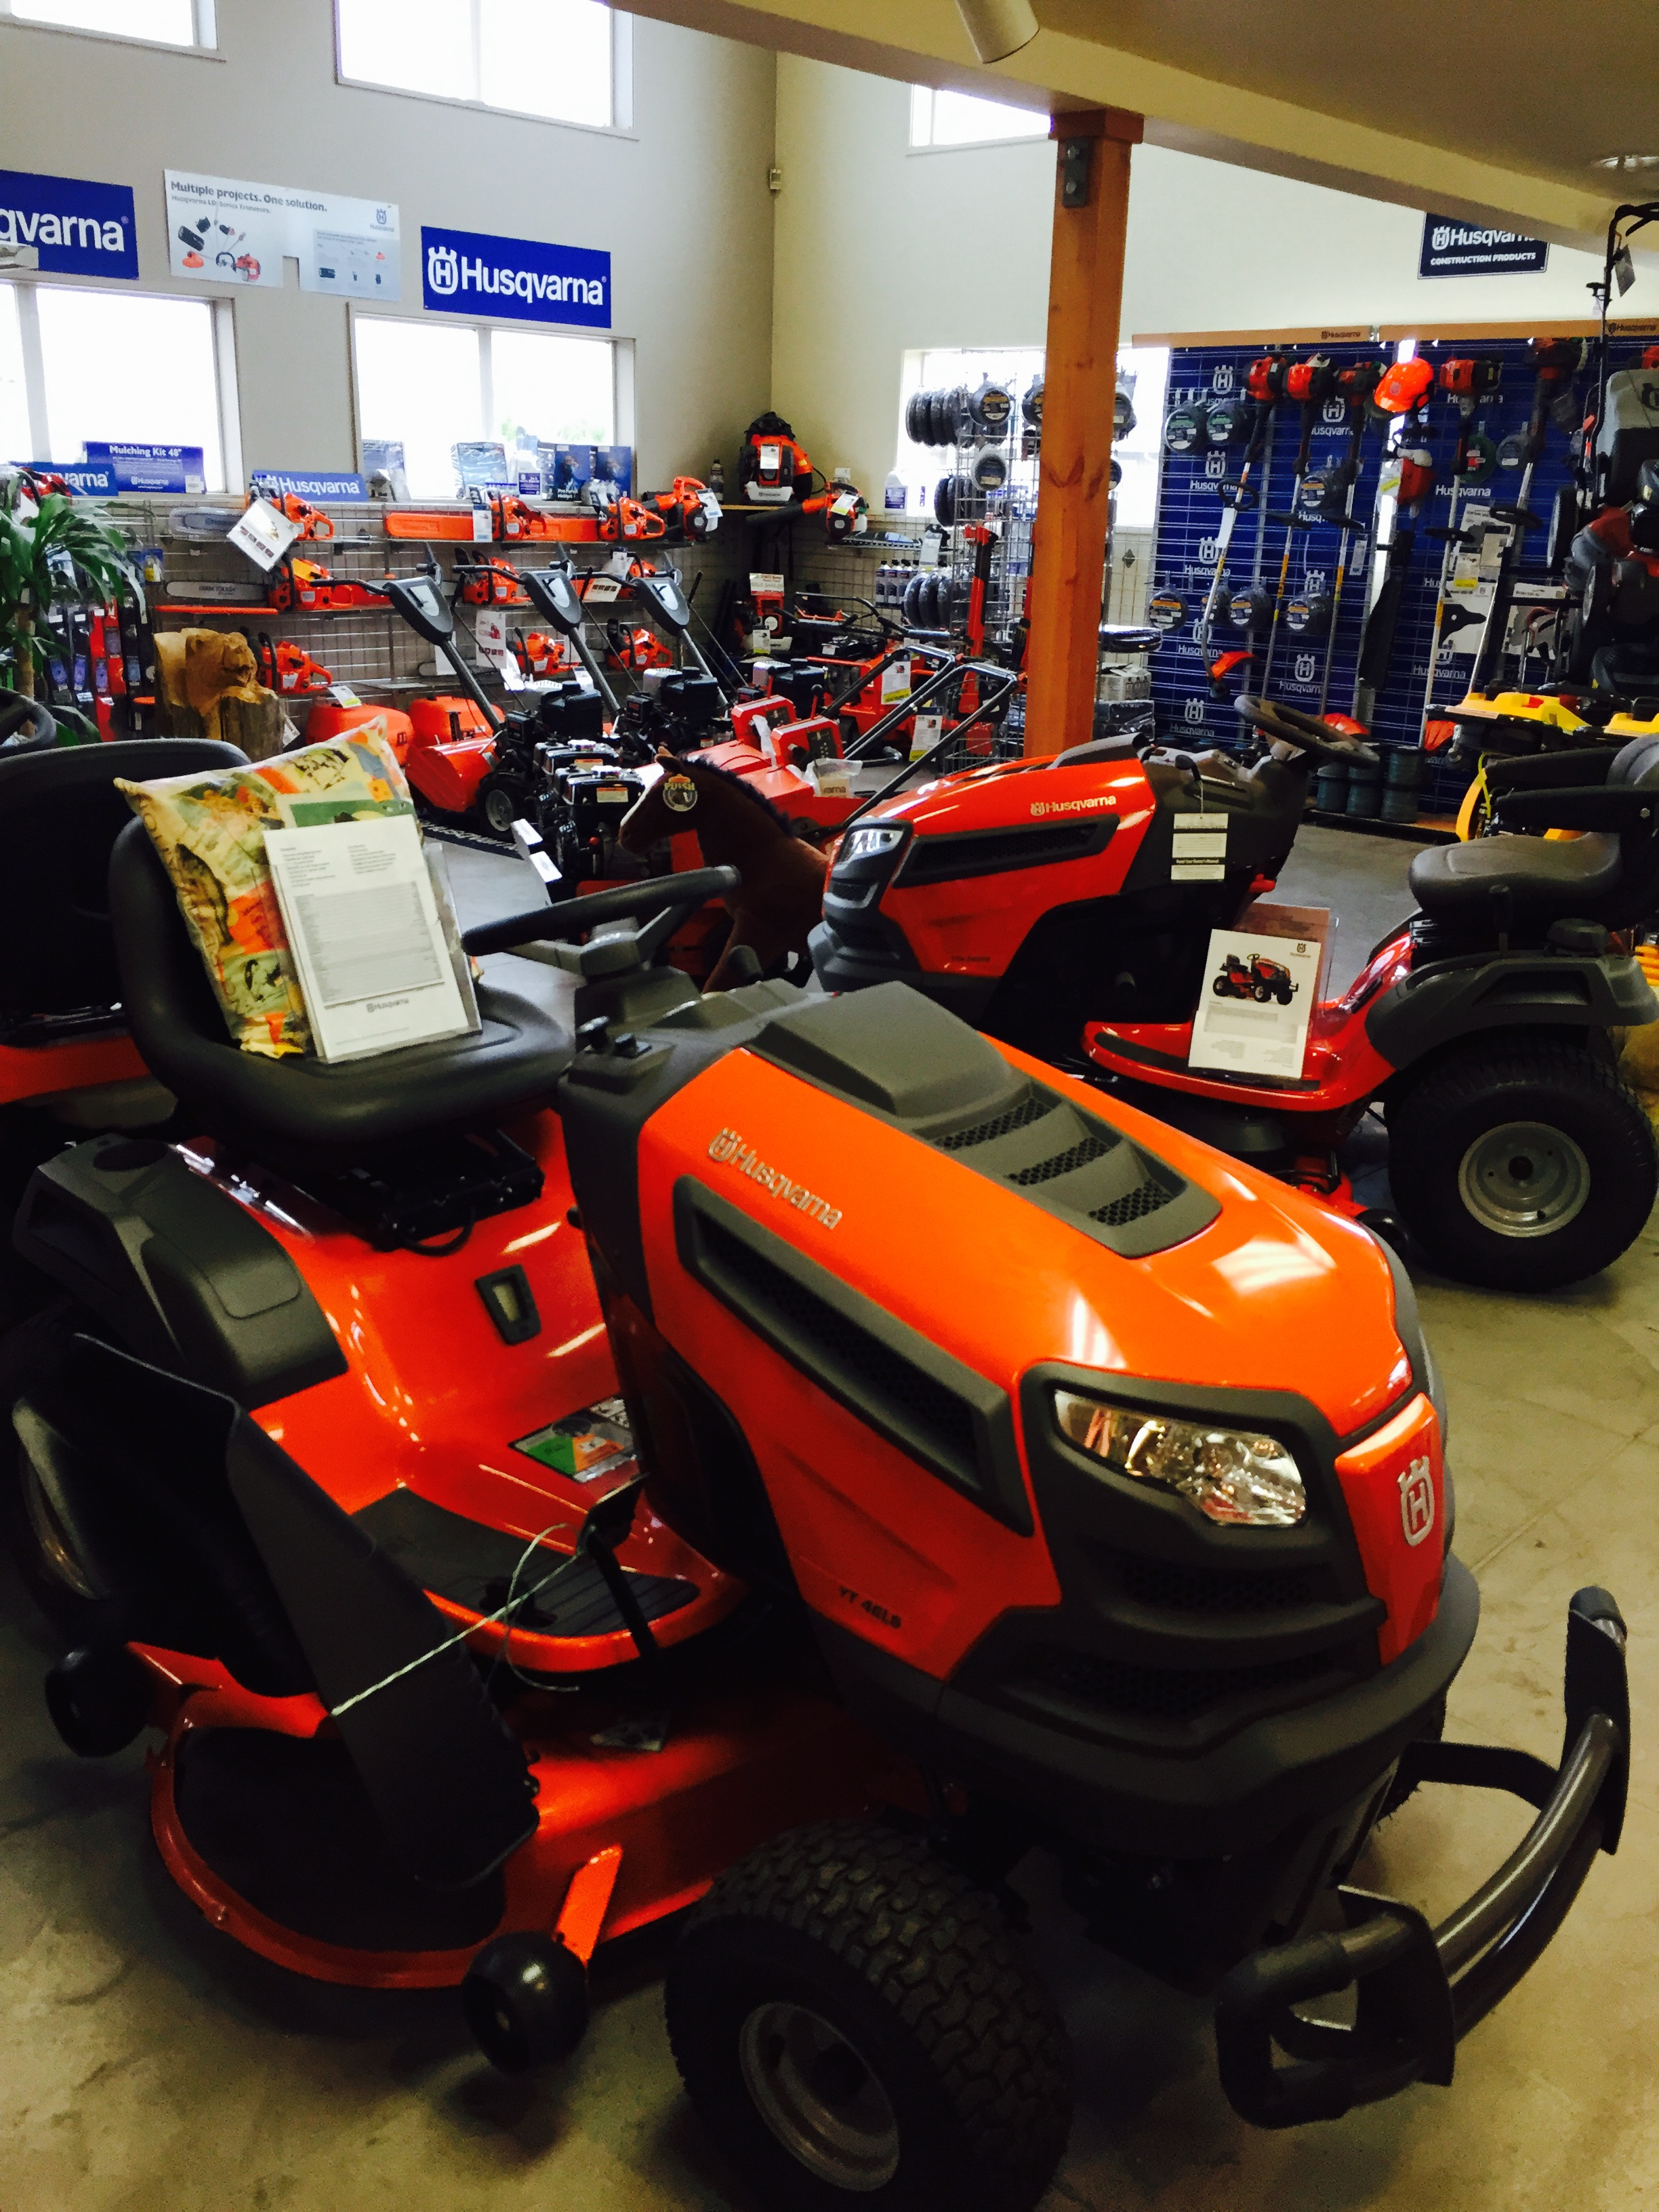 Husqvarna Dealer, Birch Equipment, Mowers, Lawn Tractors